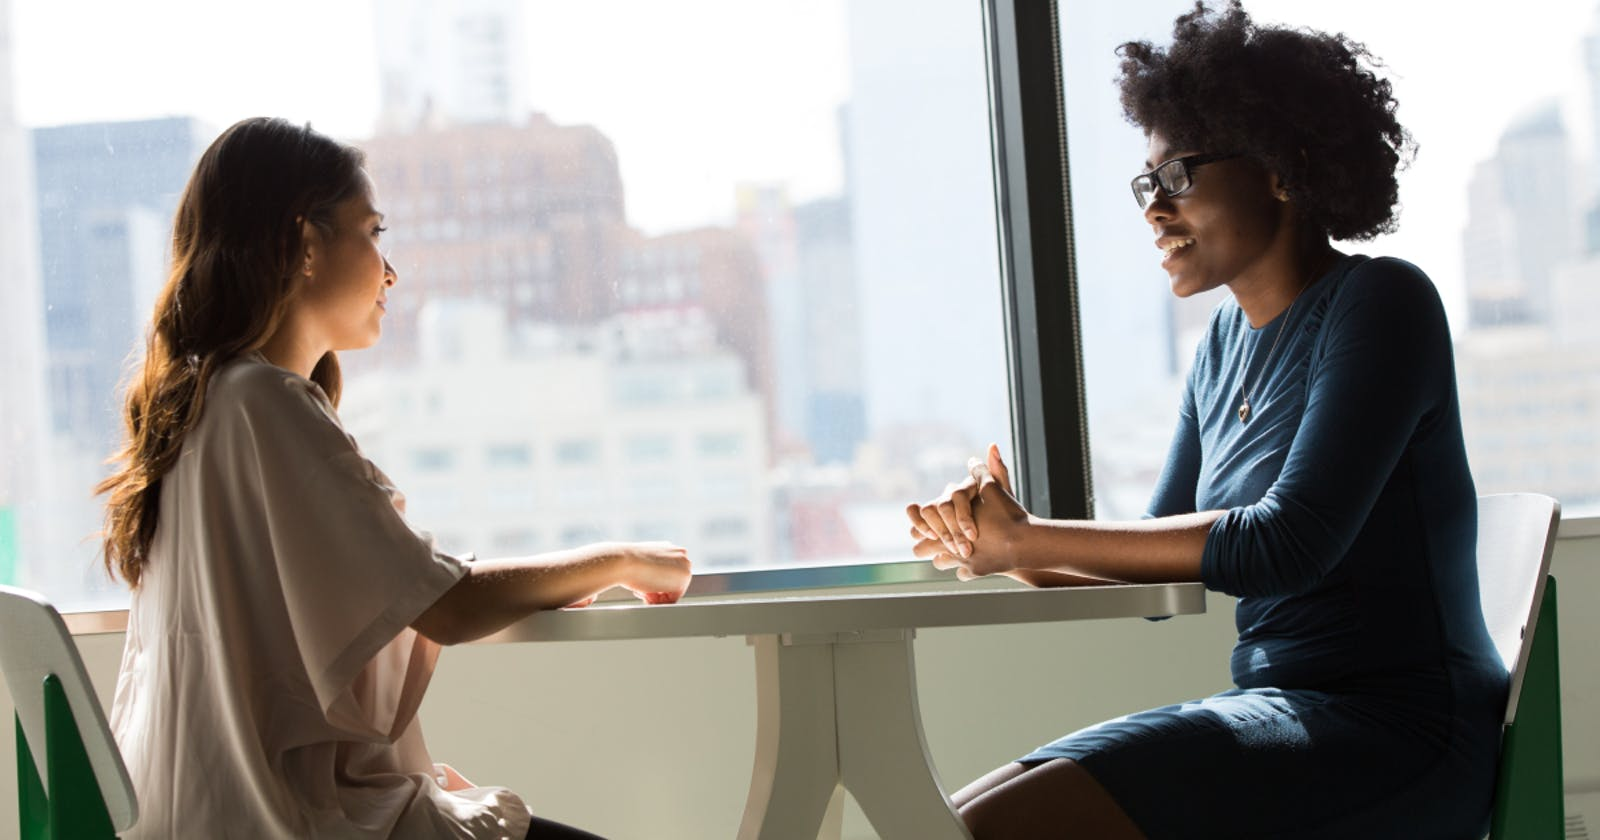 How to react when asked to rate your skills in an interview